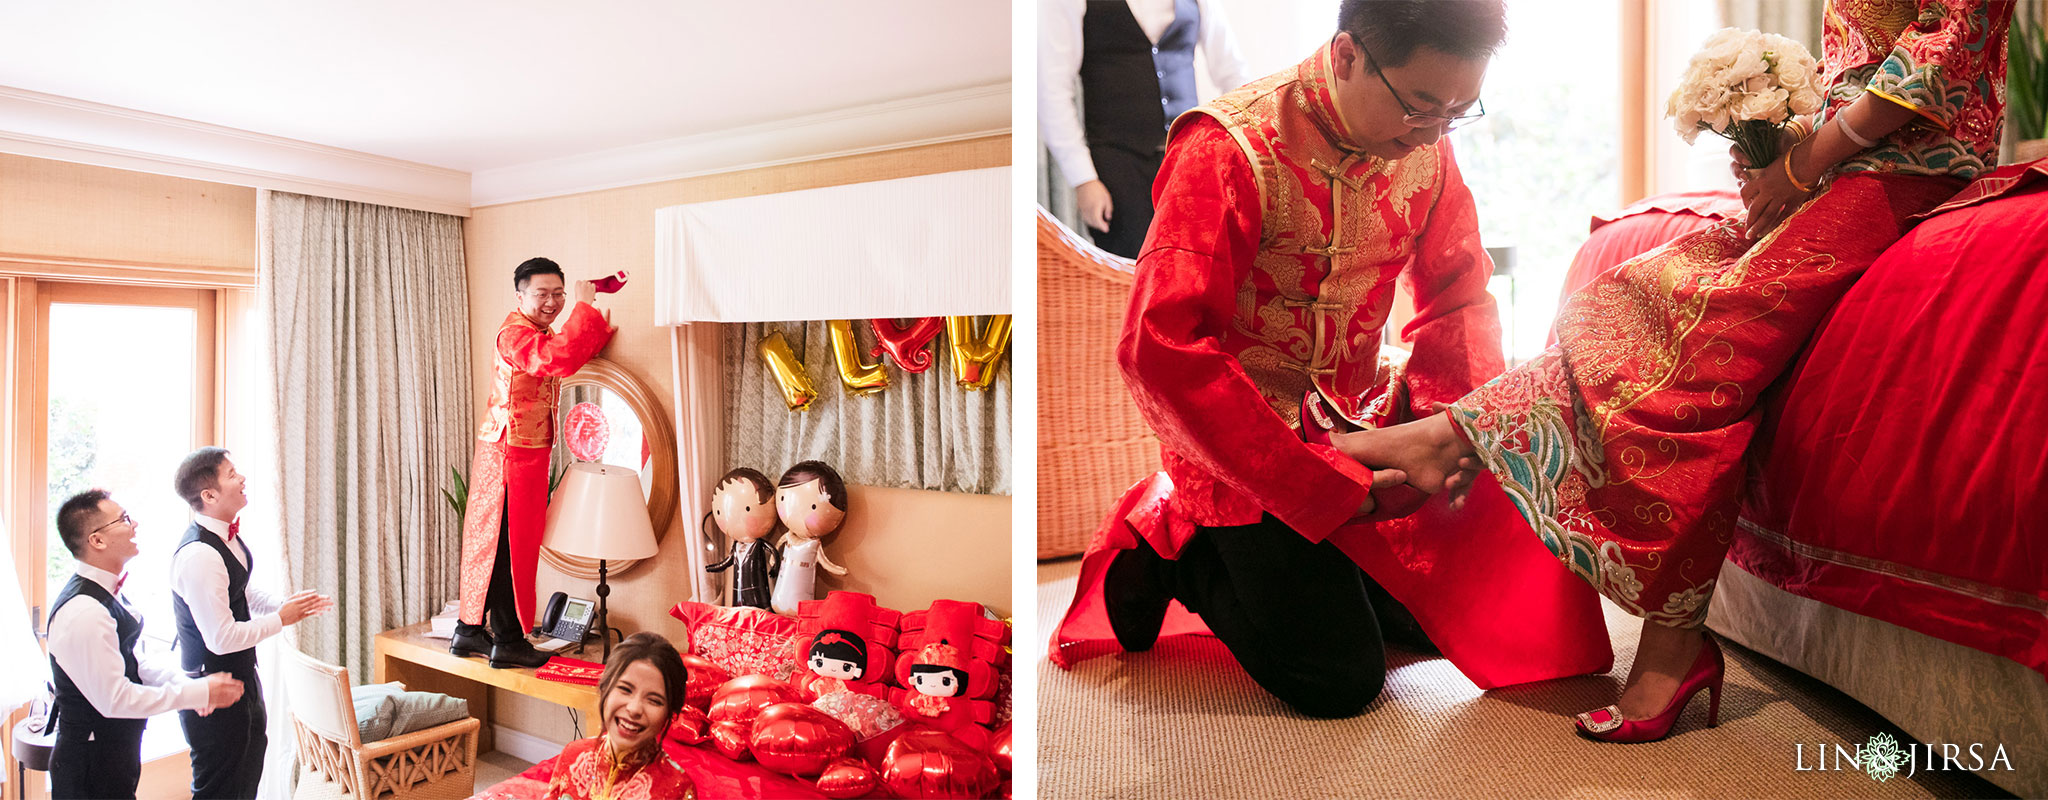 09 pelican hill orange county chinese wedding photography